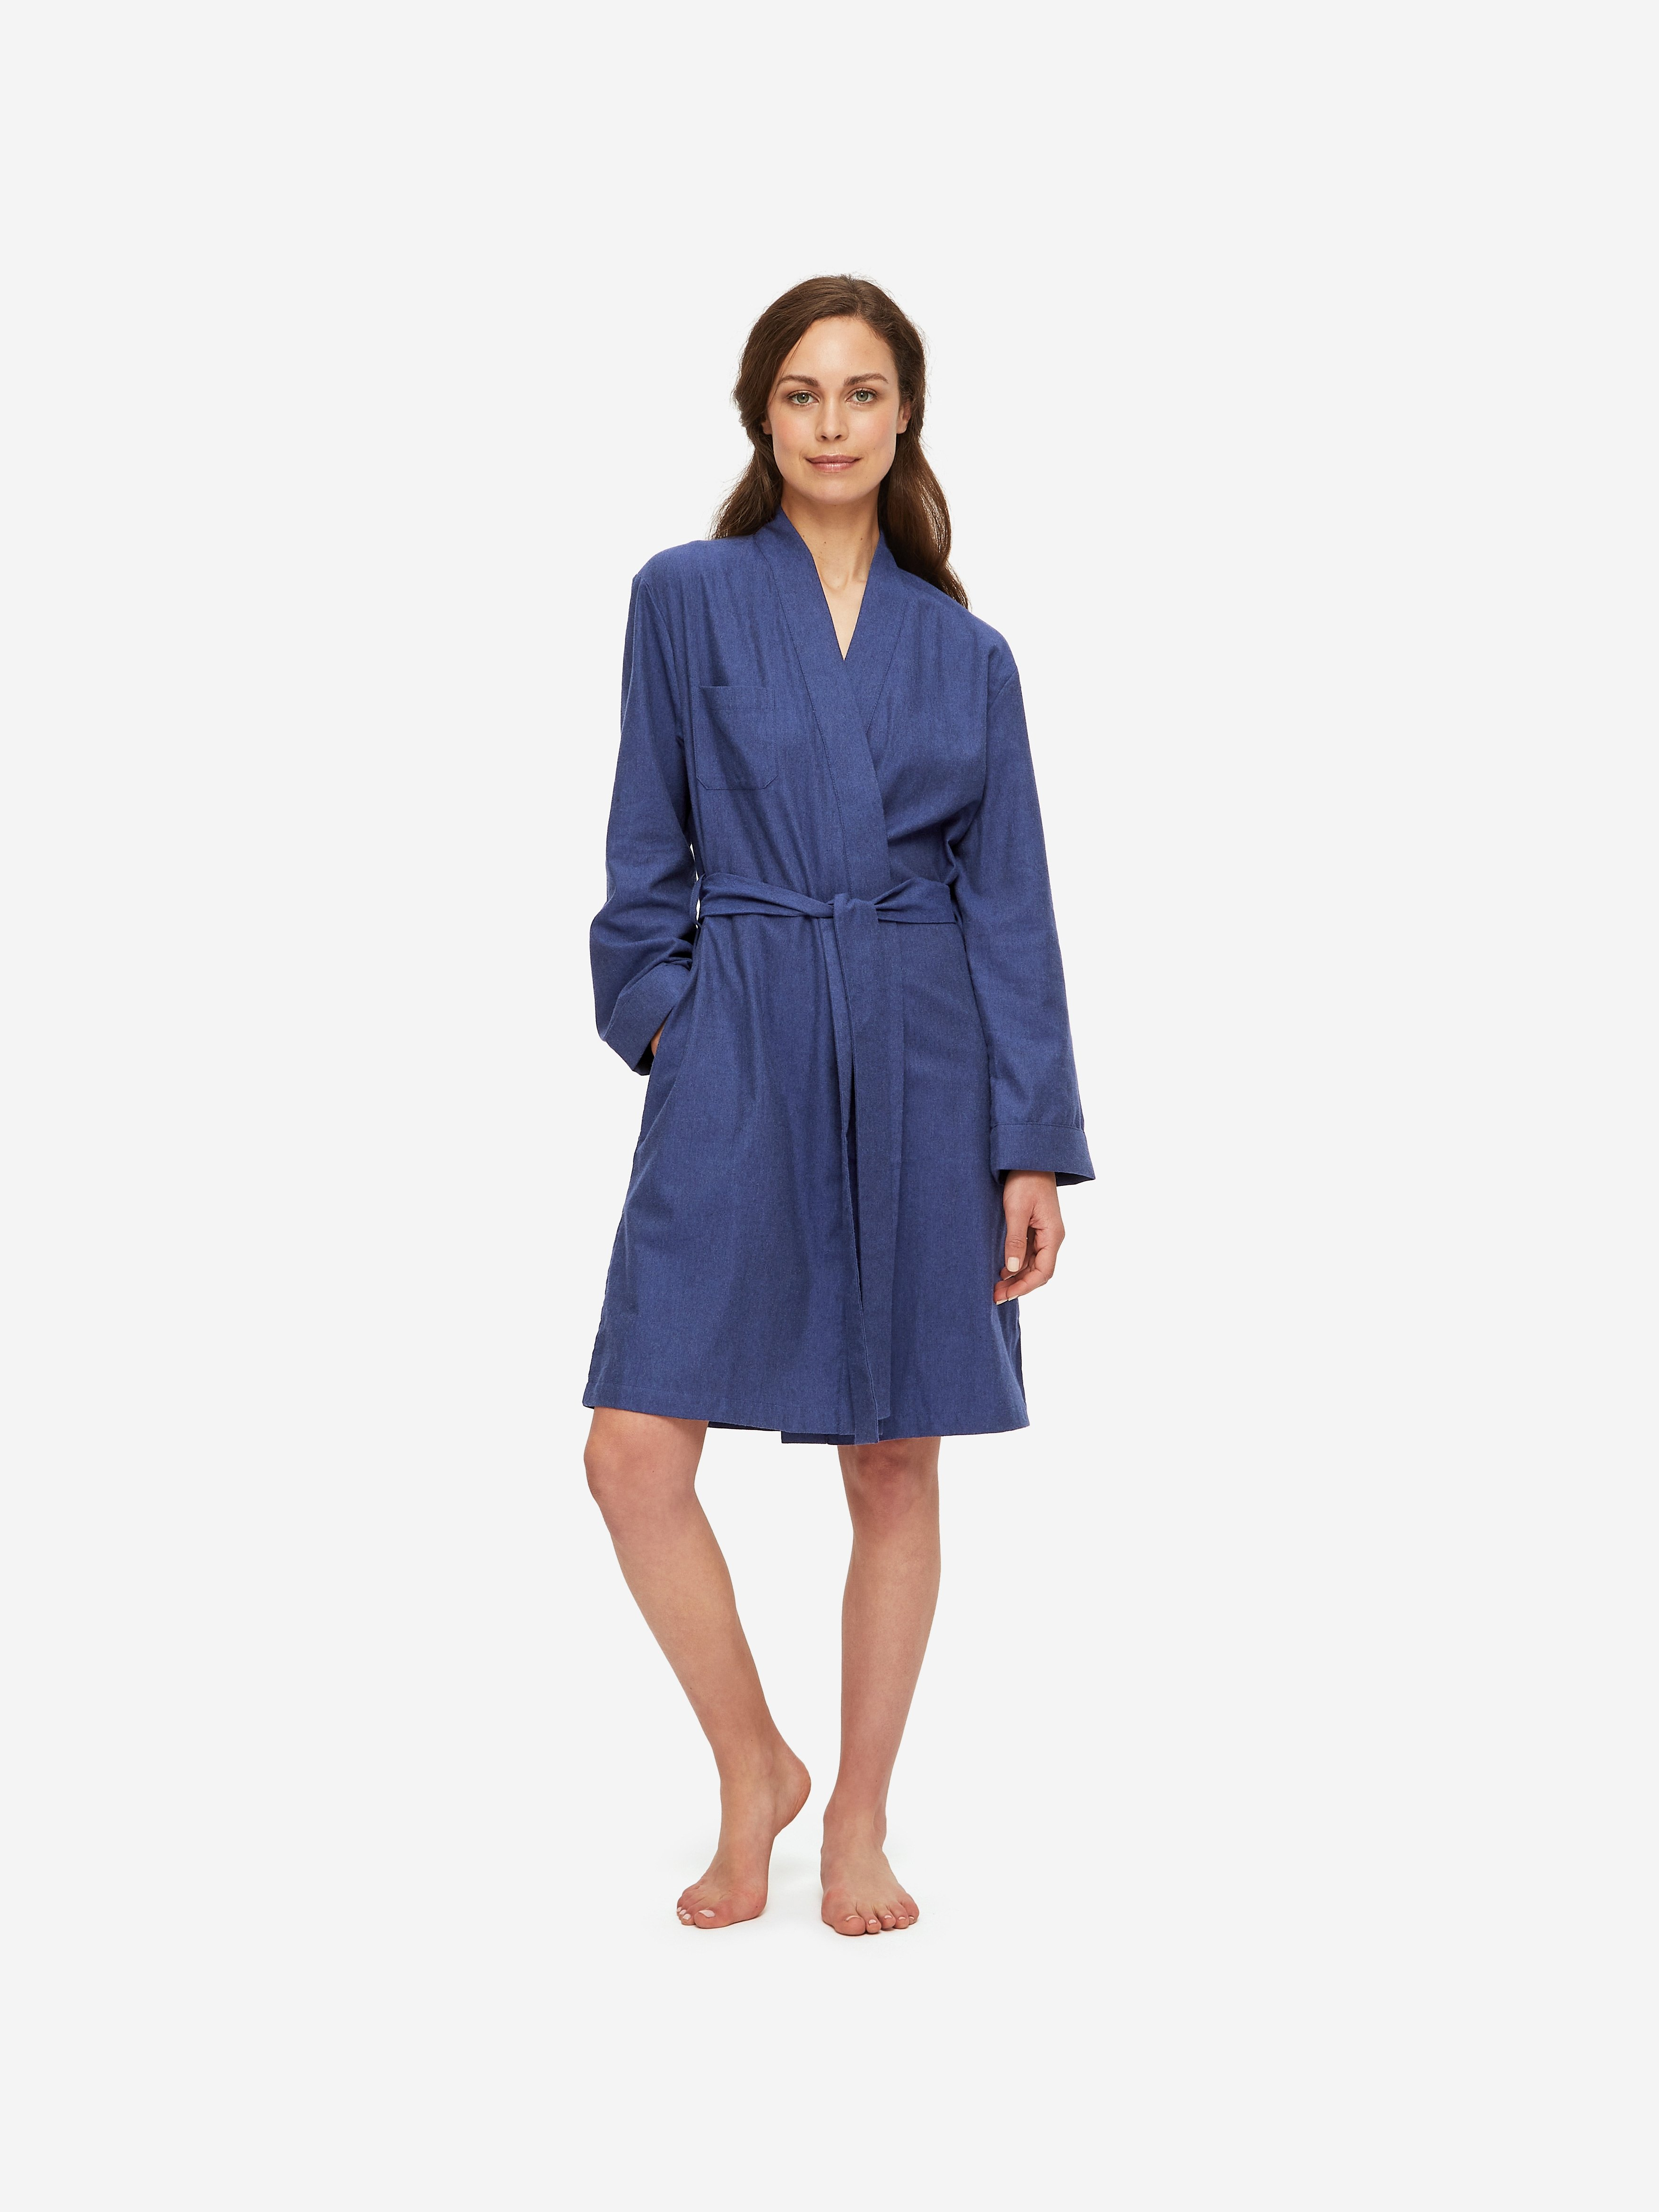 Women's Dressing Gown Balmoral 3 Brushed Cotton Navy